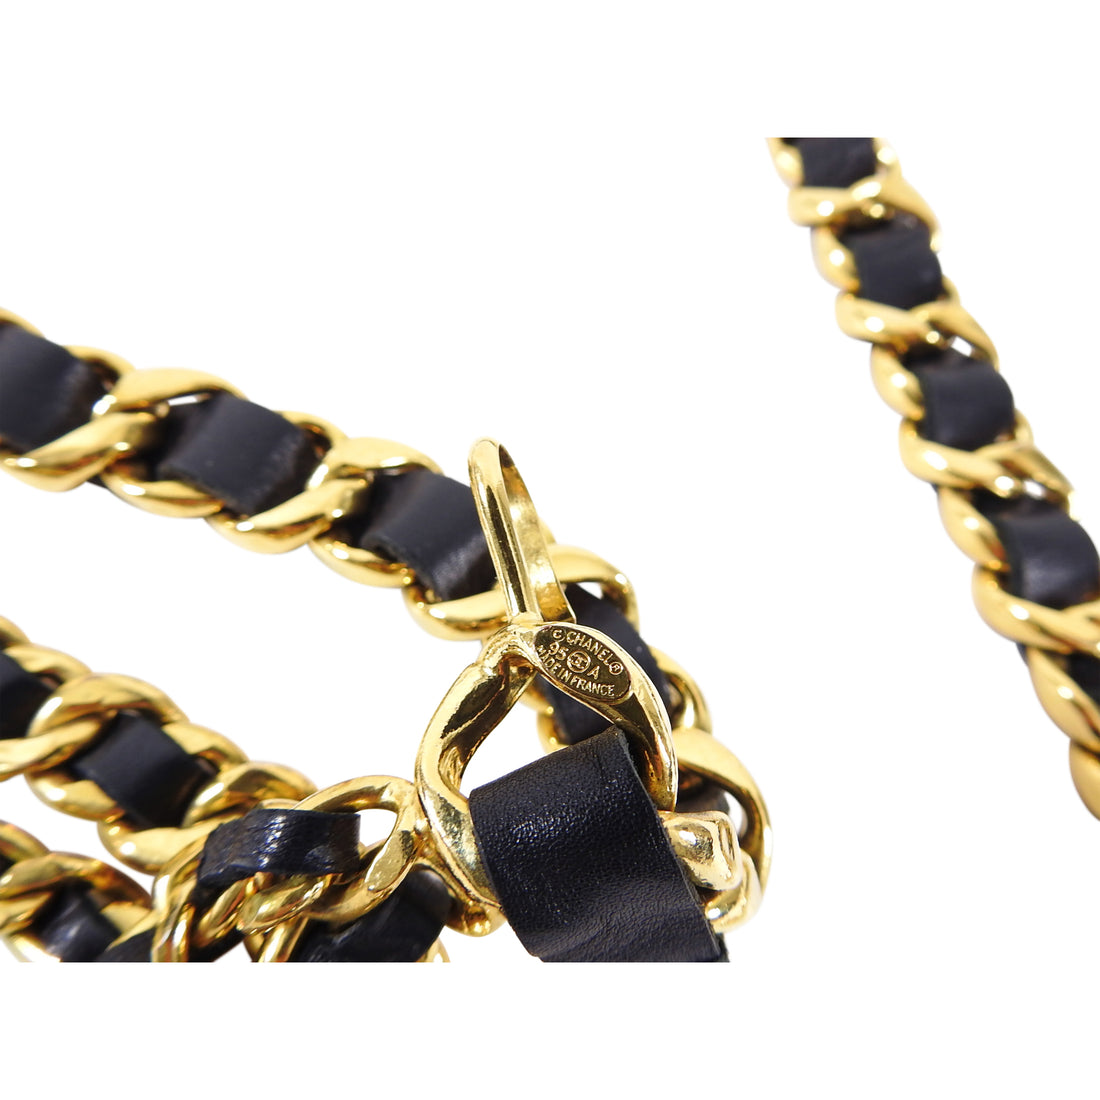 Chanel 95A Vintage Gold and Black Leather Chain Coin Belt